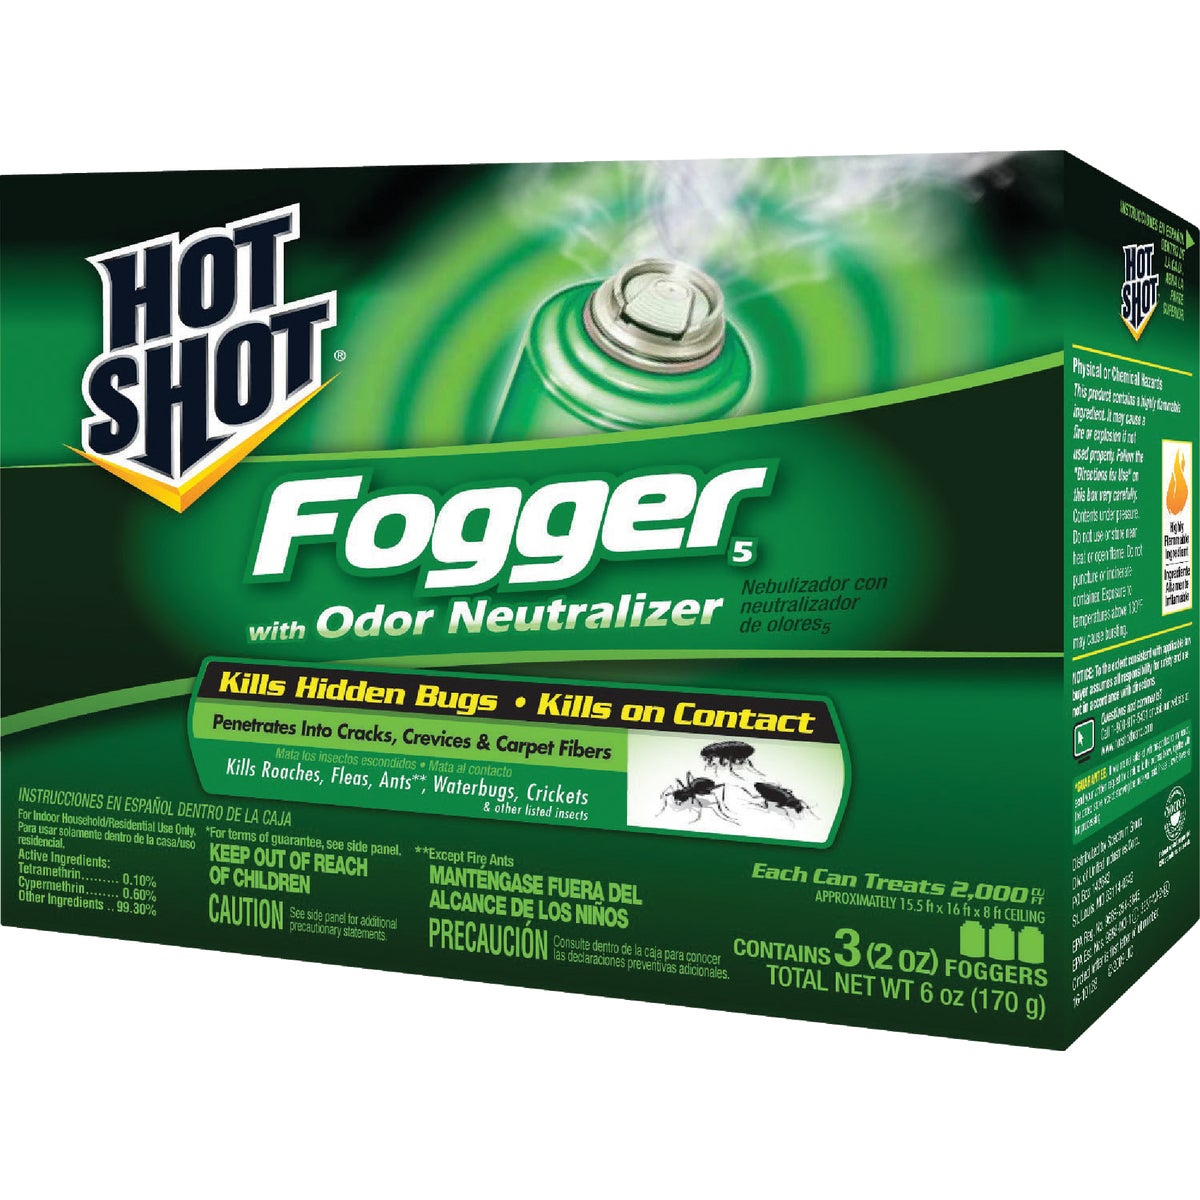 3PK HOT SHOT FOGGER - HG20137 by United Industries Co